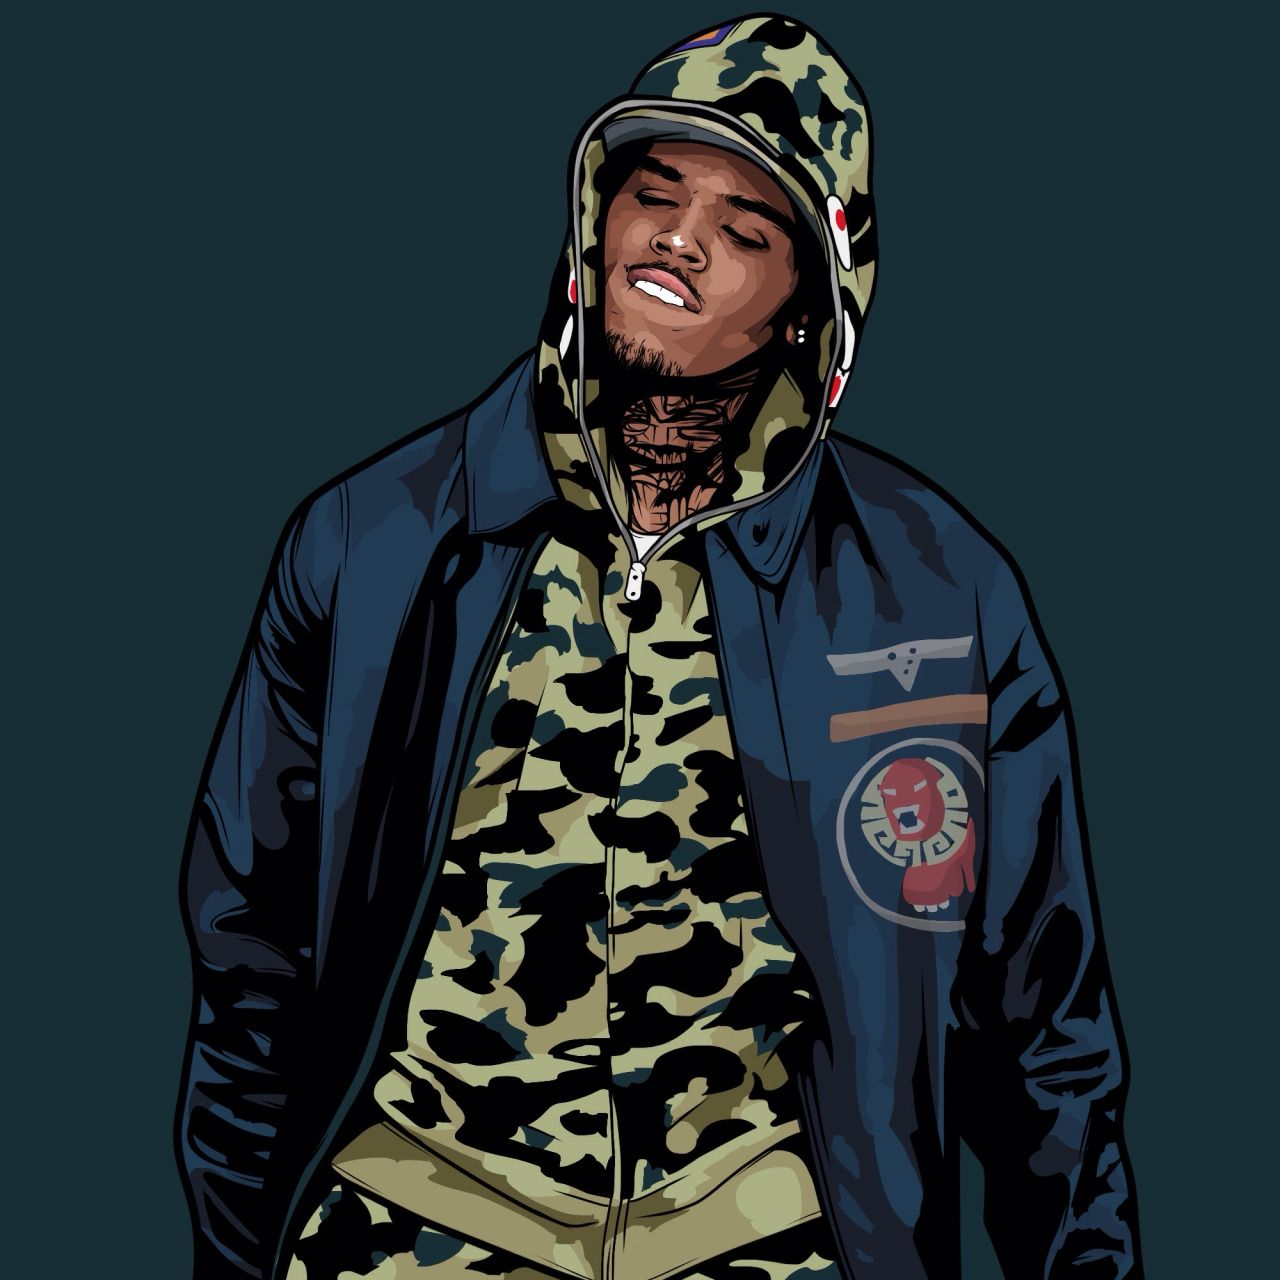 Pin by Kaevi💗 on Wallpaper♥️ Chris brown art